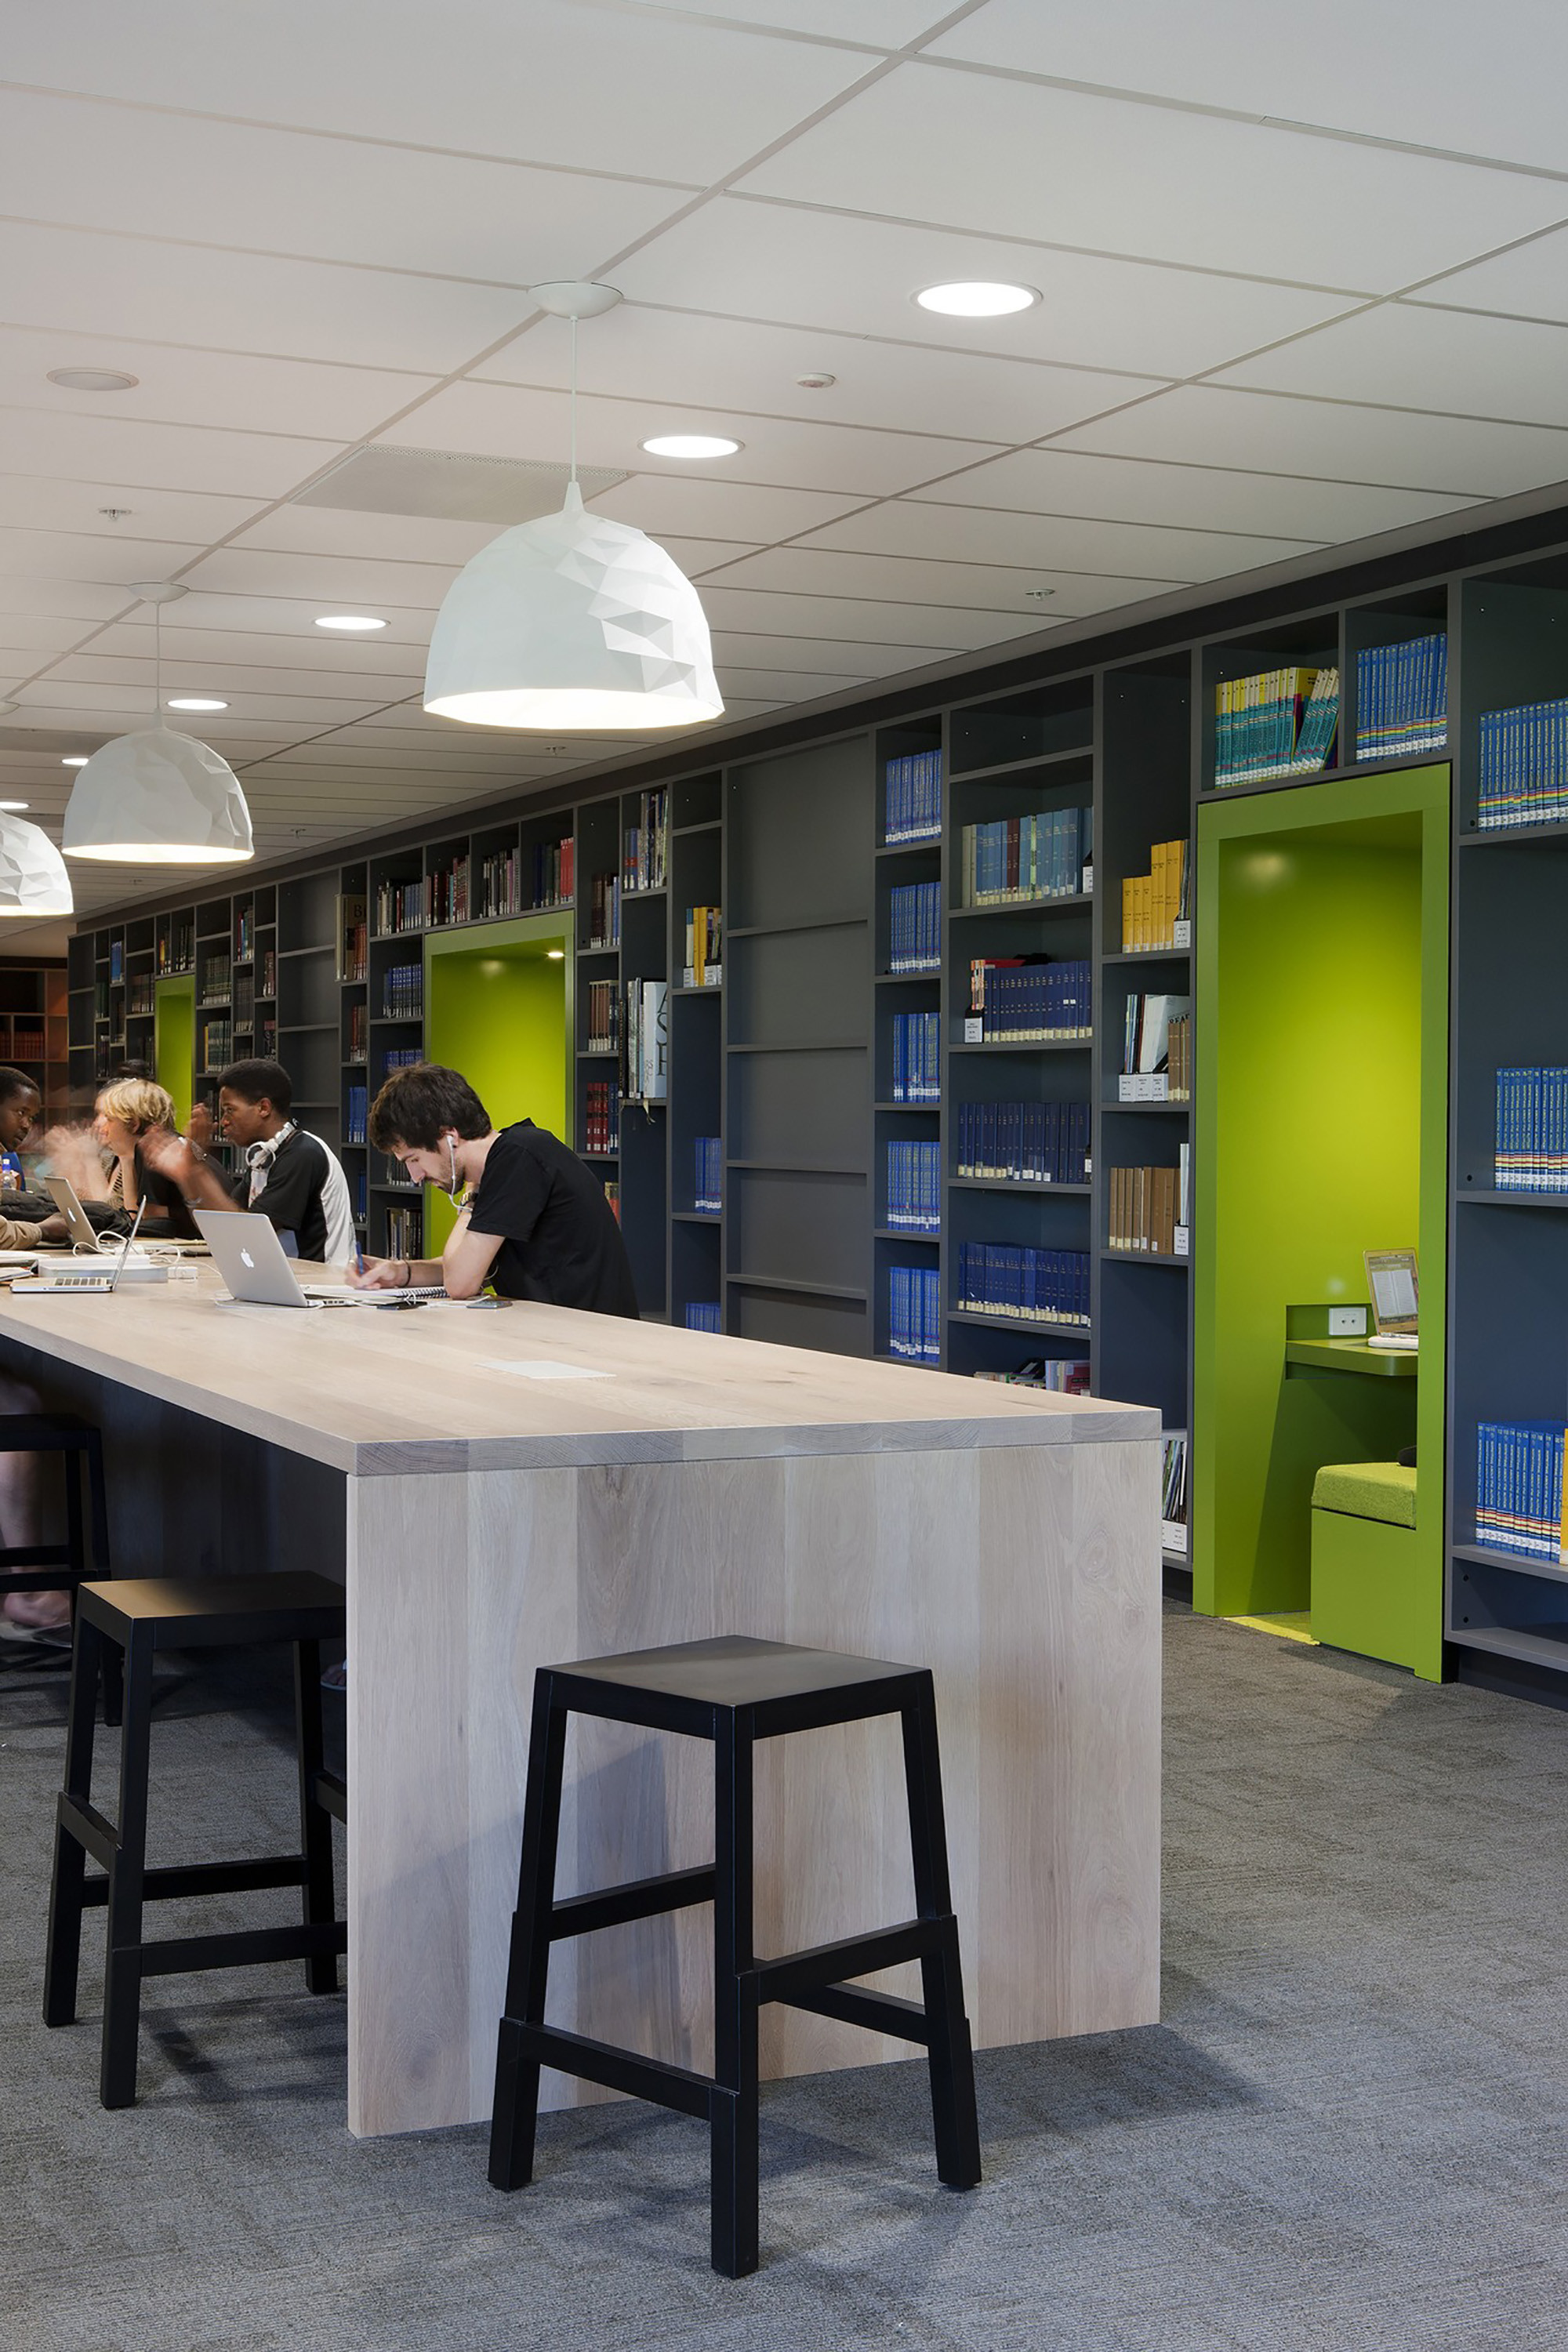 Private Library Study Rooms: Gallery Of Raheen Library At Australian Catholic